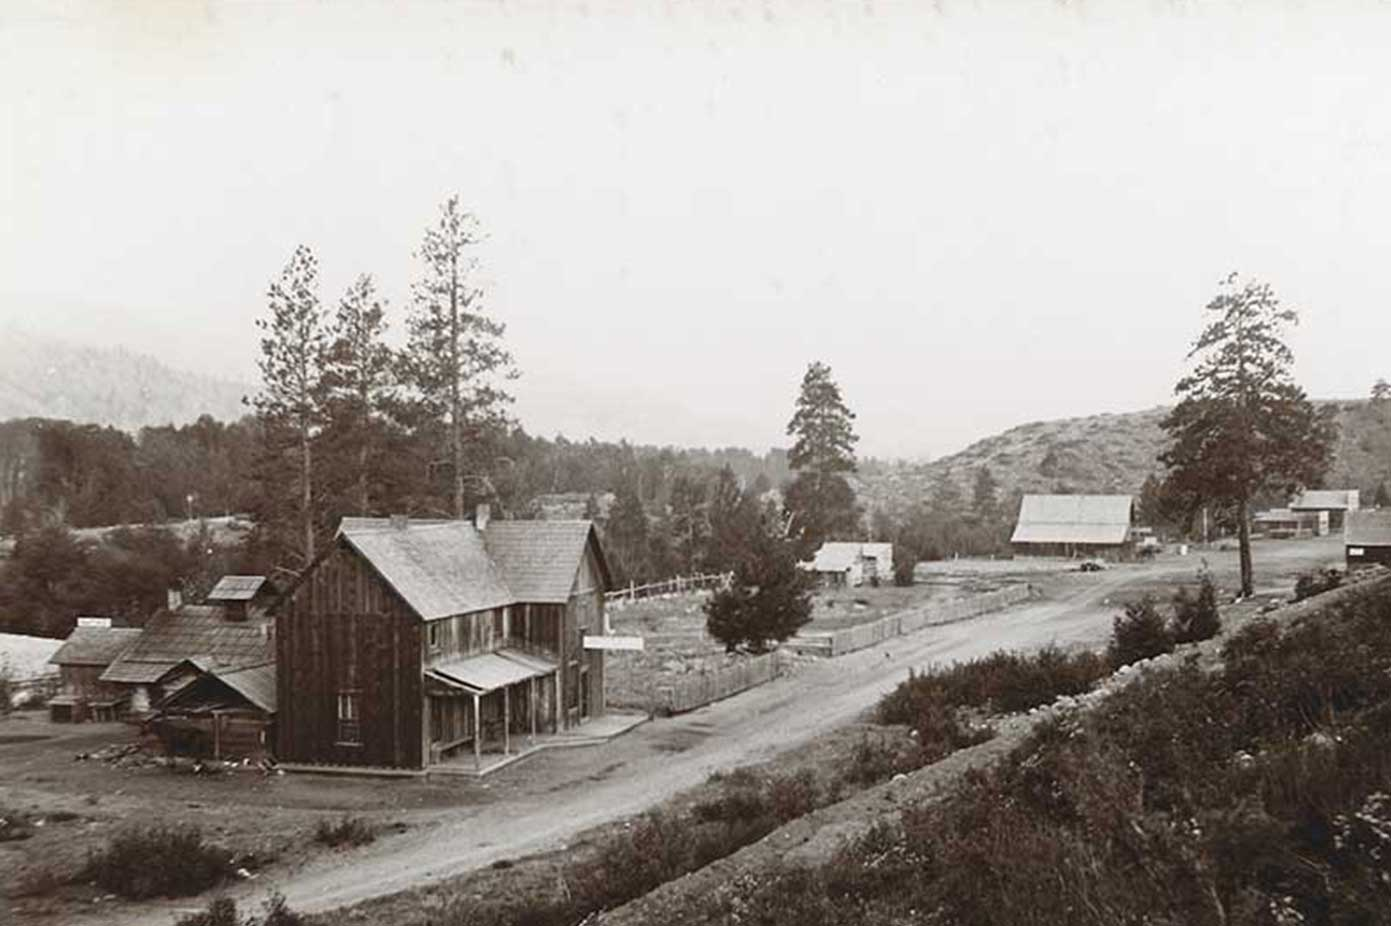 Methow historical photo